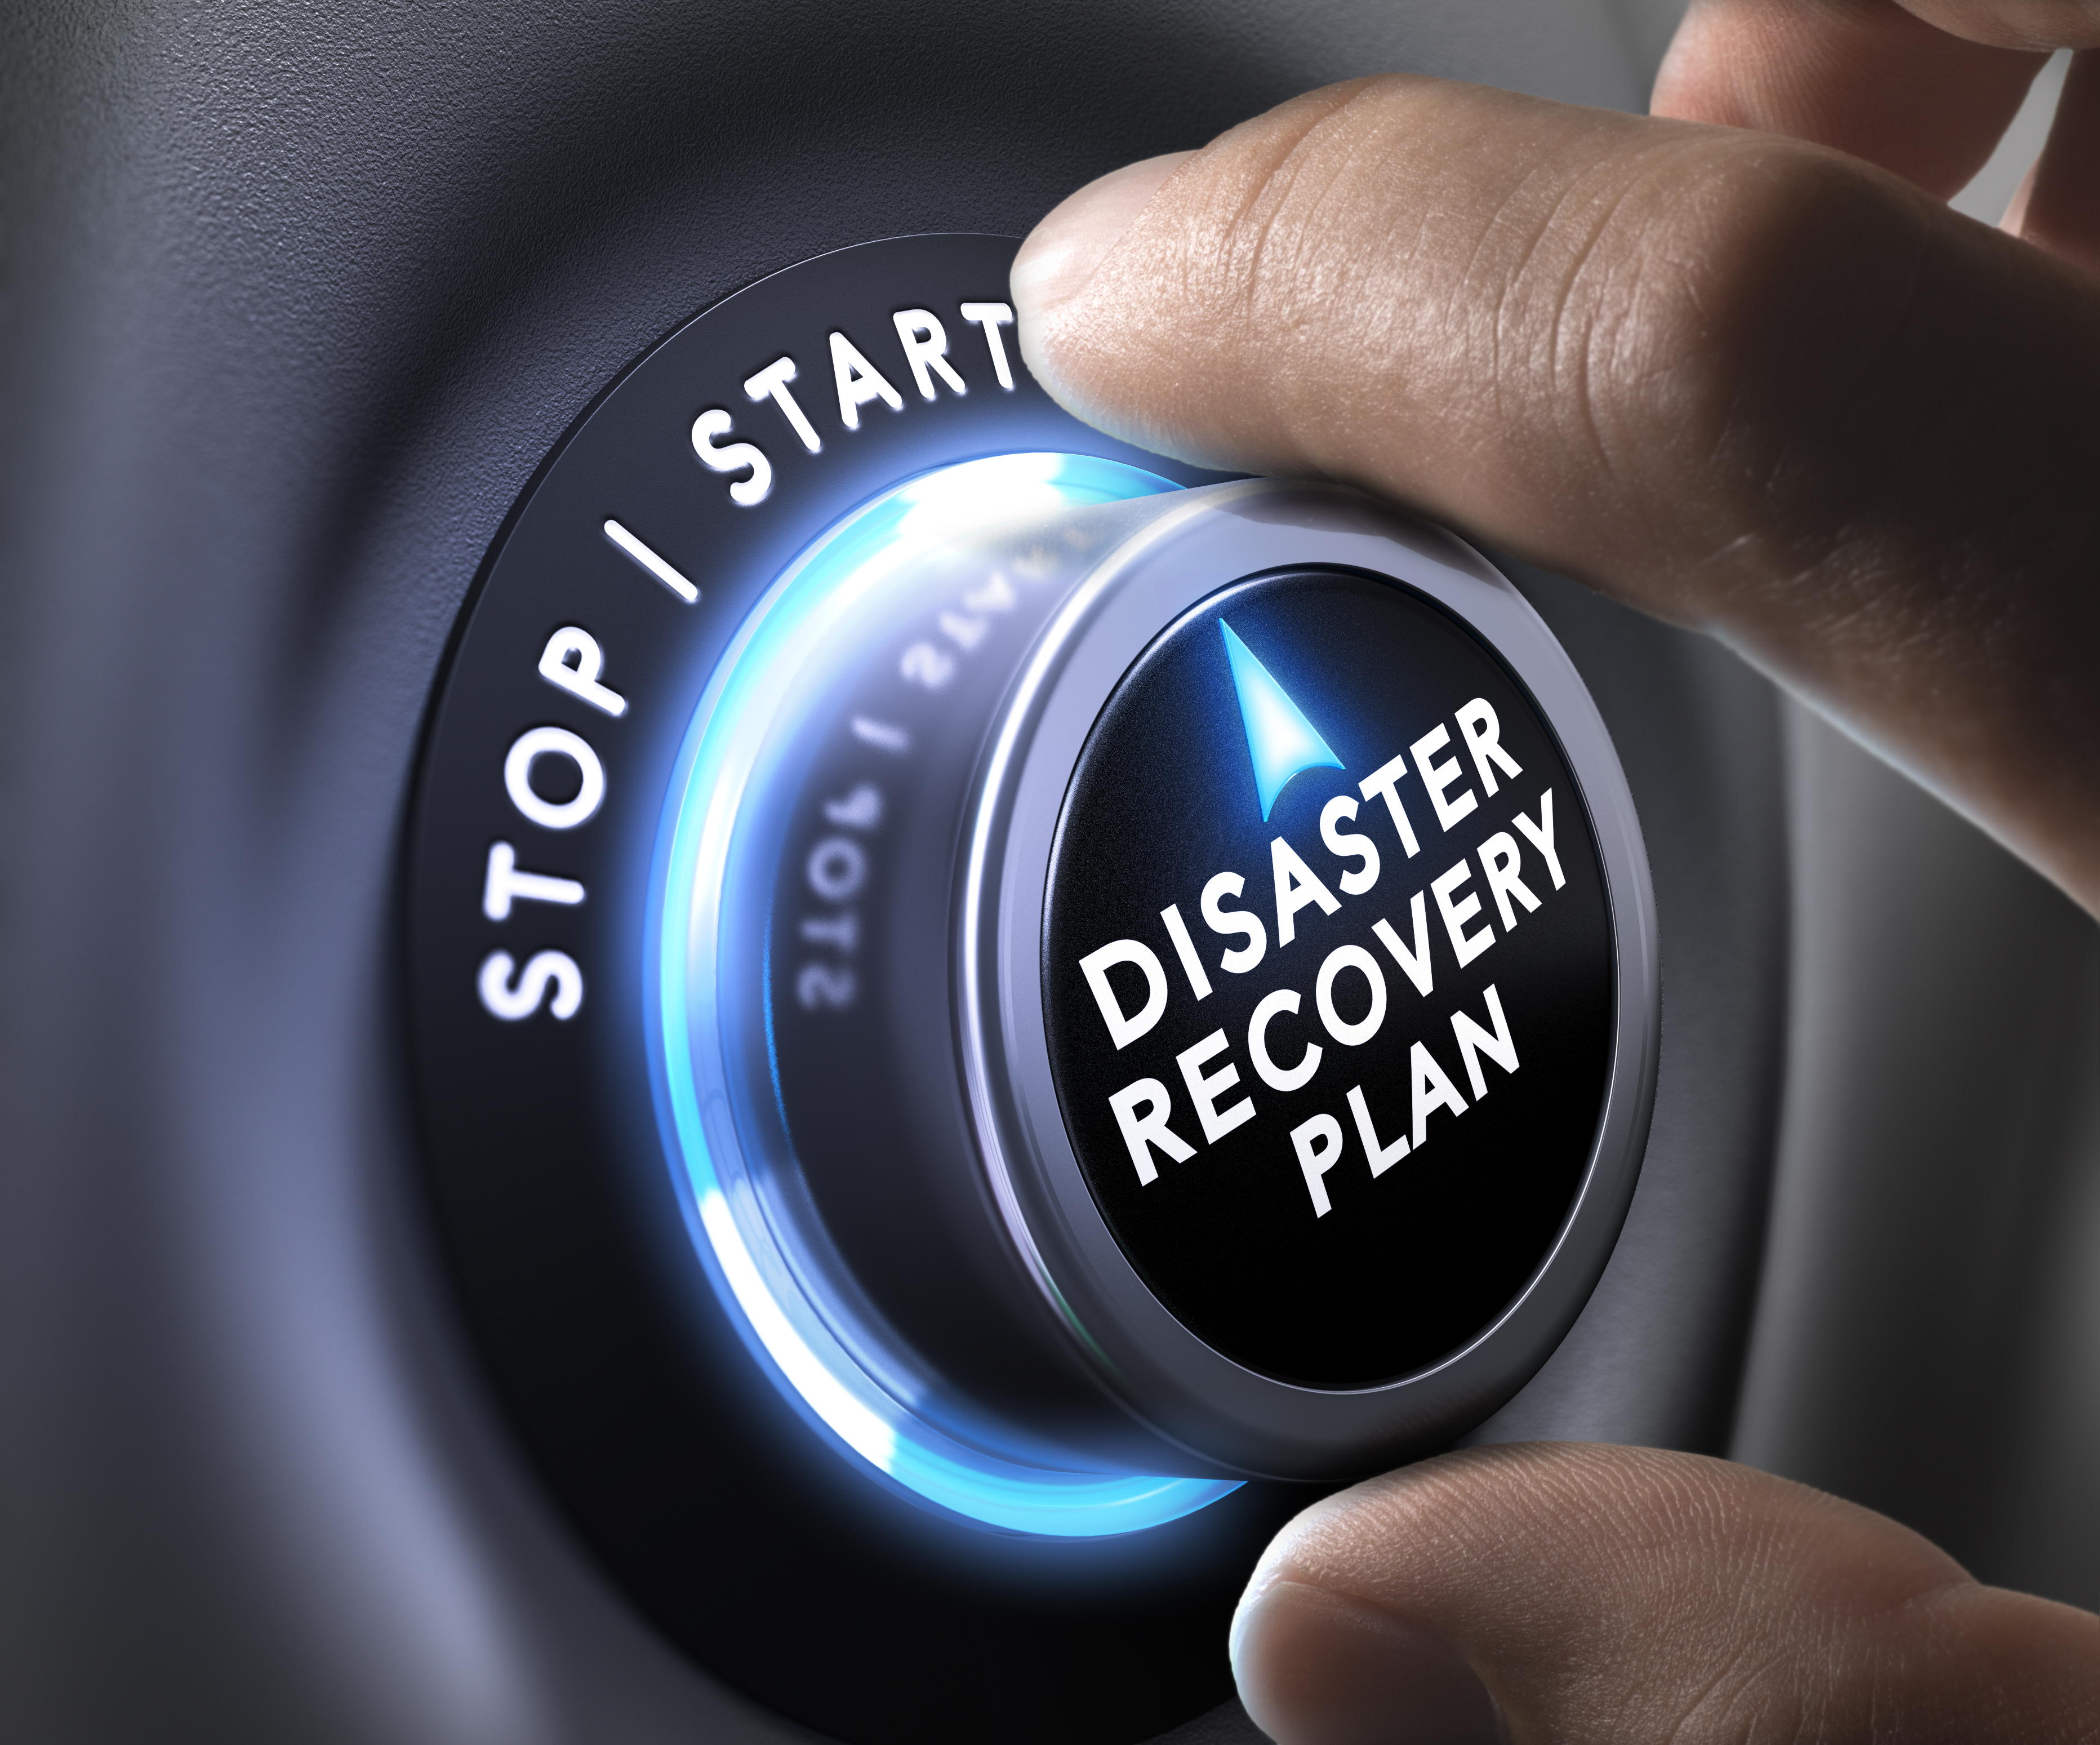 Benefits of disaster recovery